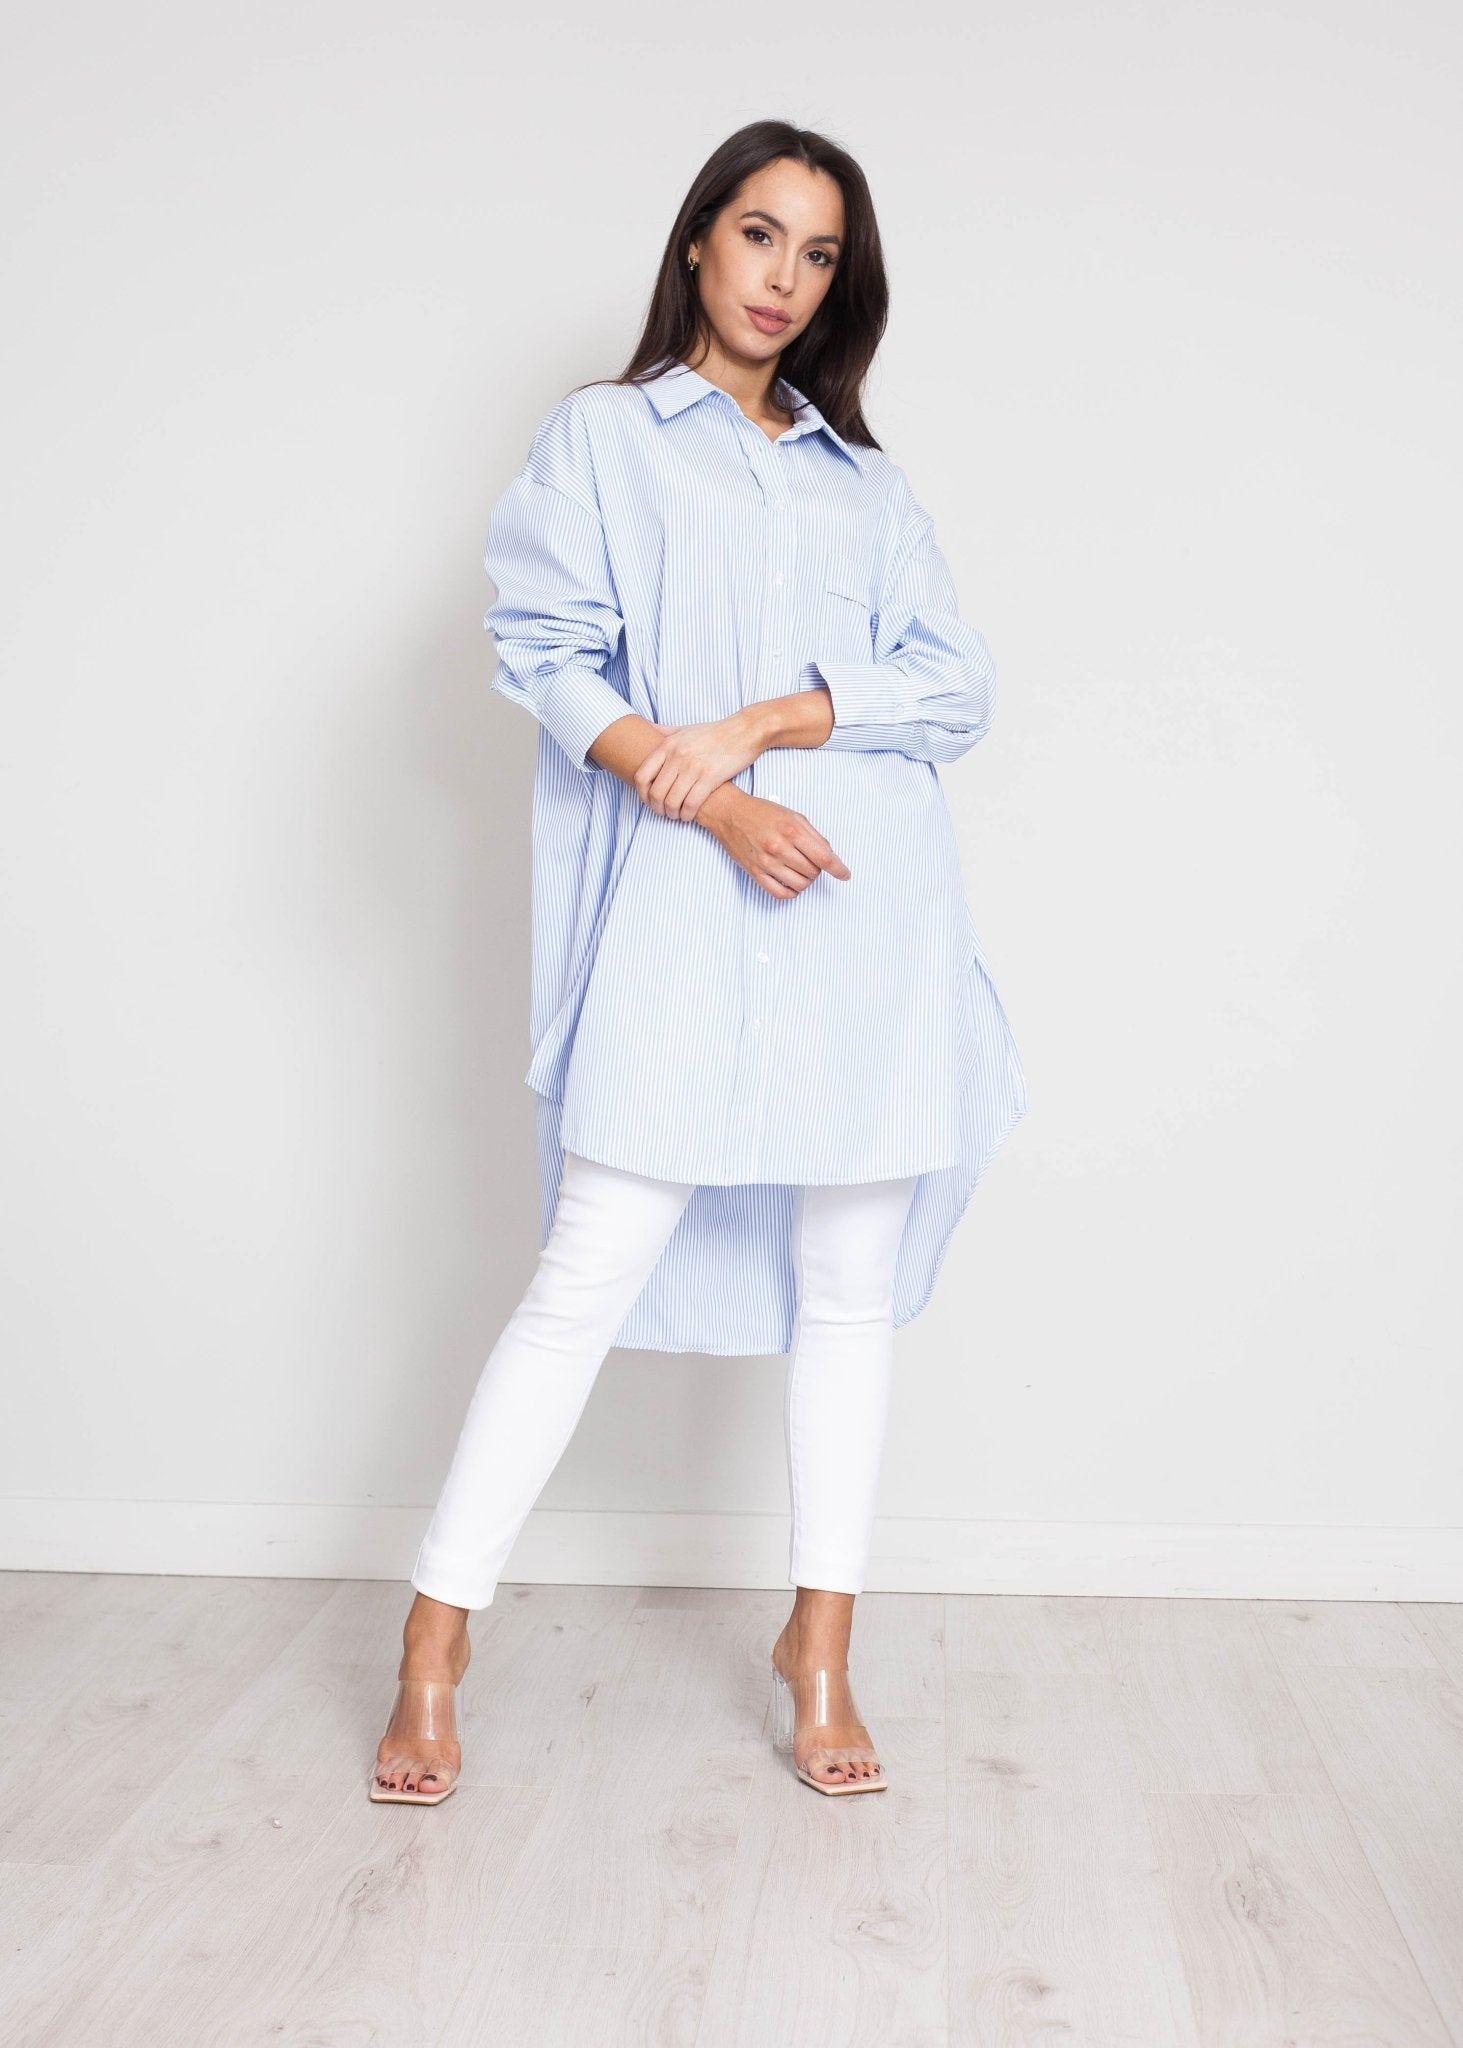 Priya Longline Stripe Shirt In Blue&White - The Walk in Wardrobe